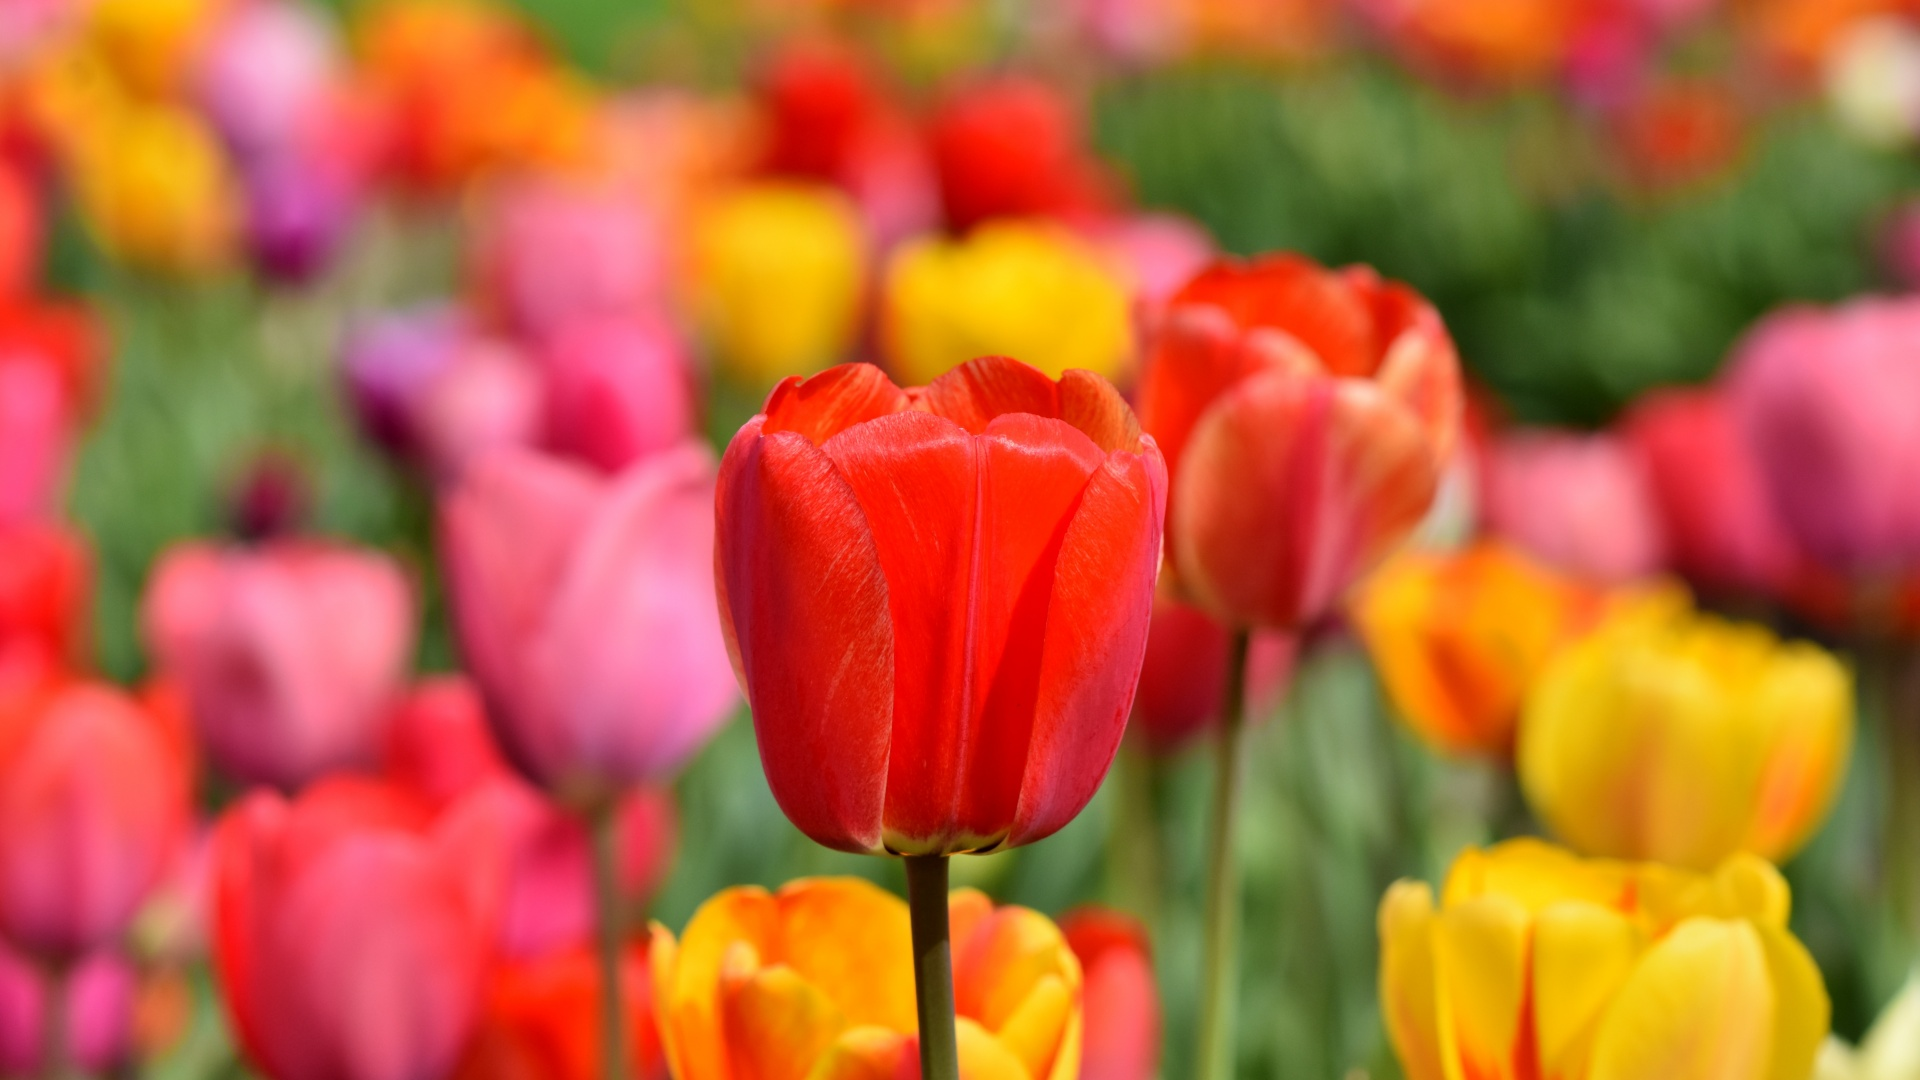 Tulip Field 4k Wallpaper Multicolor Colorful Flower Garden Spring Blossom Bloom Red Yellow Flowers 2668